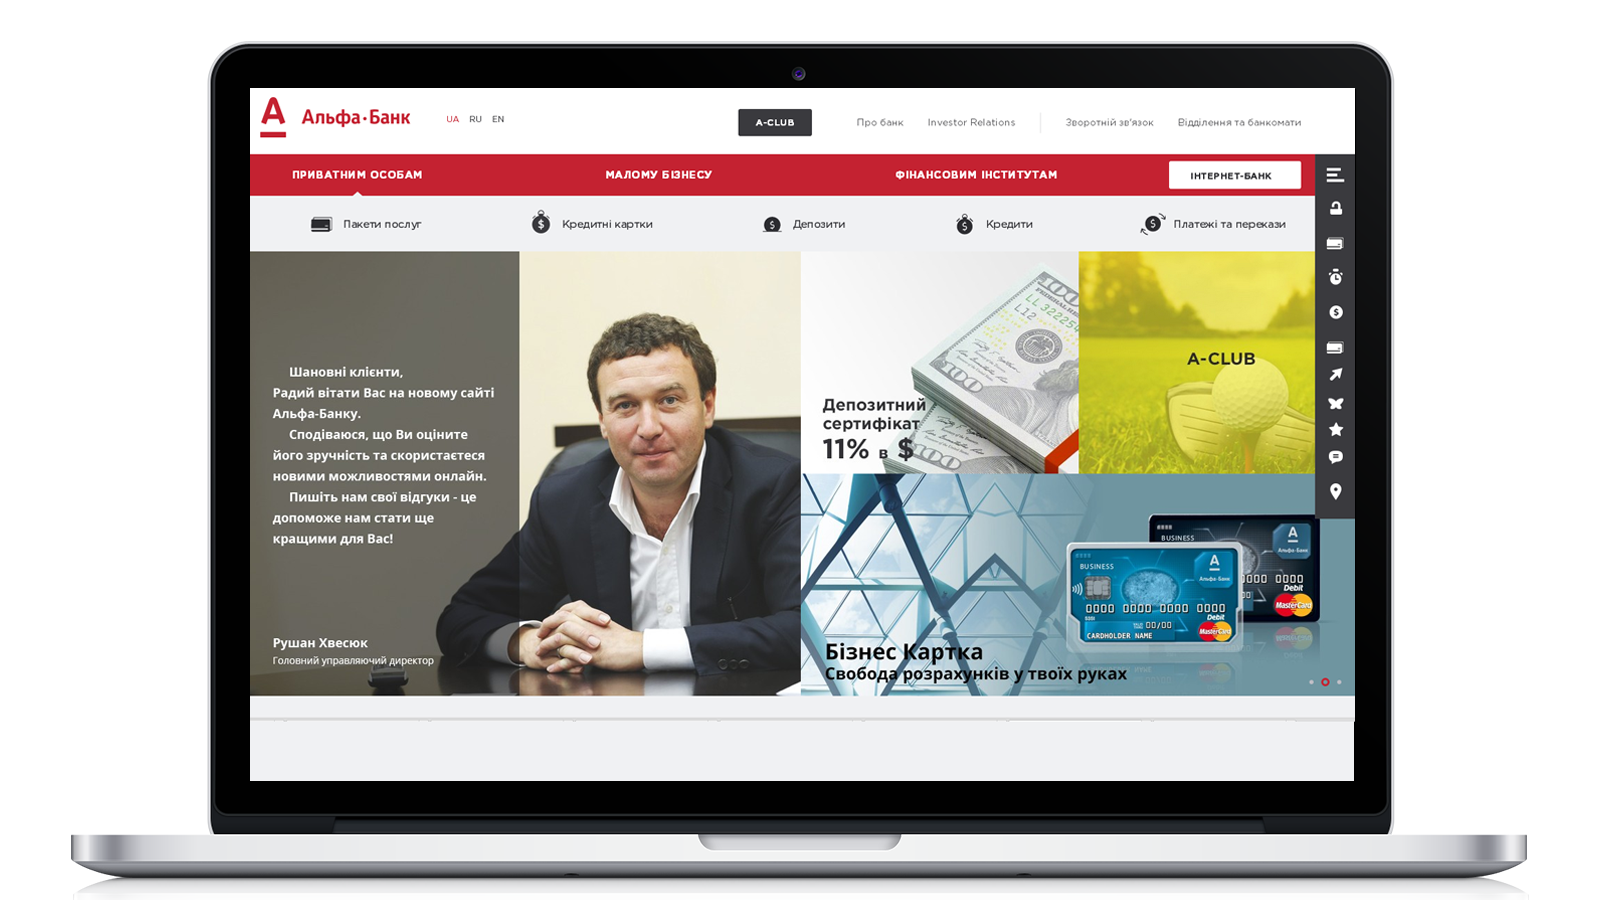 The software part of the Alfa Bank Ukraine